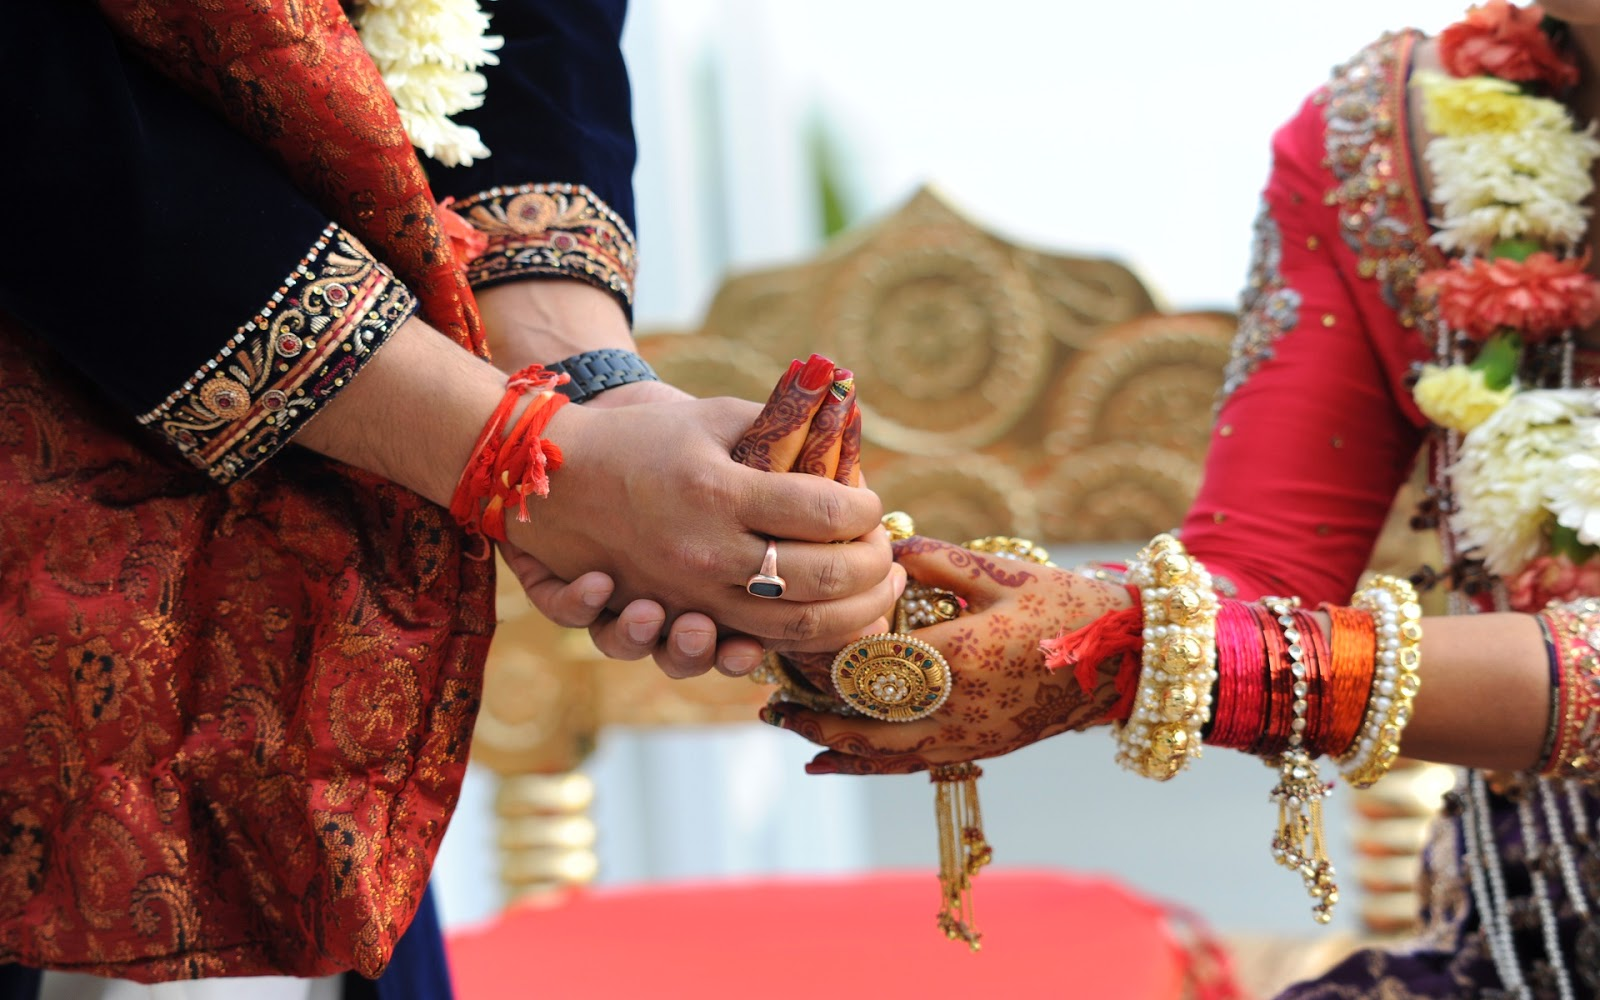 Wallpaper download marriage anniversary - Wallpaper Download Marriage Anniversary 44